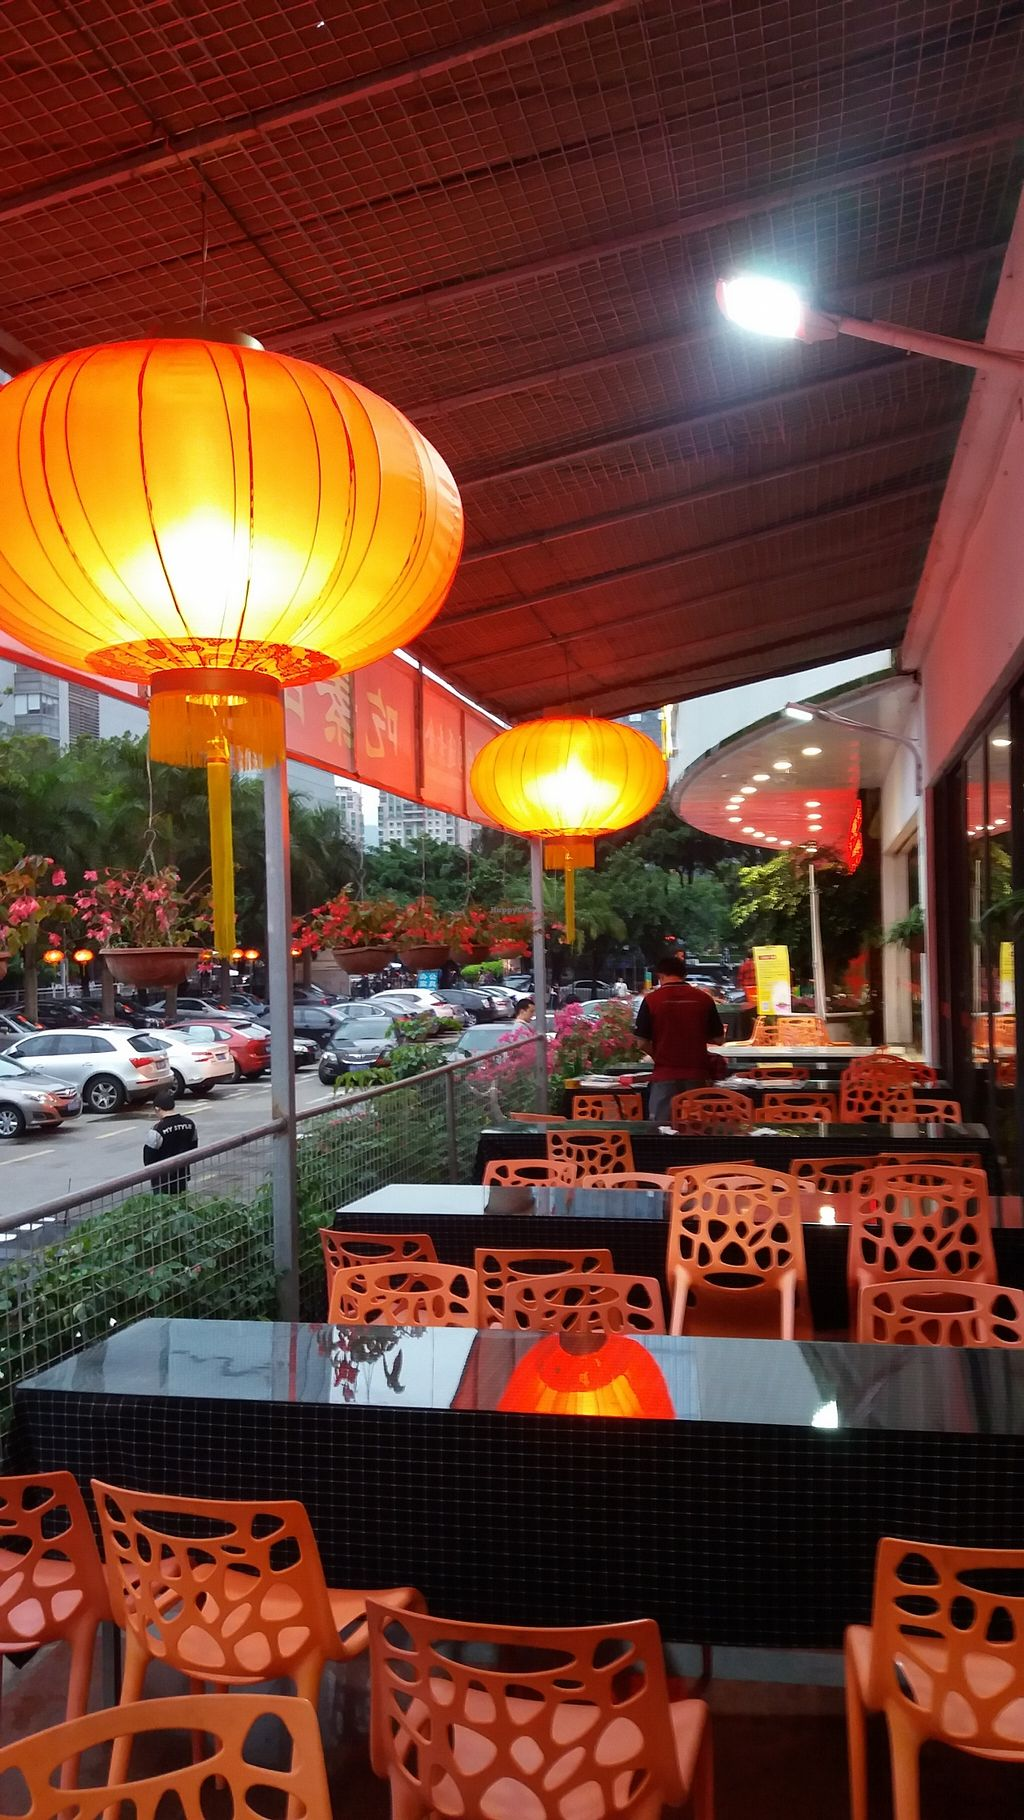 "Photo of Yuan Tong Vegetarian - Plum Garden  by <a href=""/members/profile/aussiedave"">aussiedave</a> <br/>The outdoor seating area <br/> April 11, 2016  - <a href='/contact/abuse/image/58096/143917'>Report</a>"